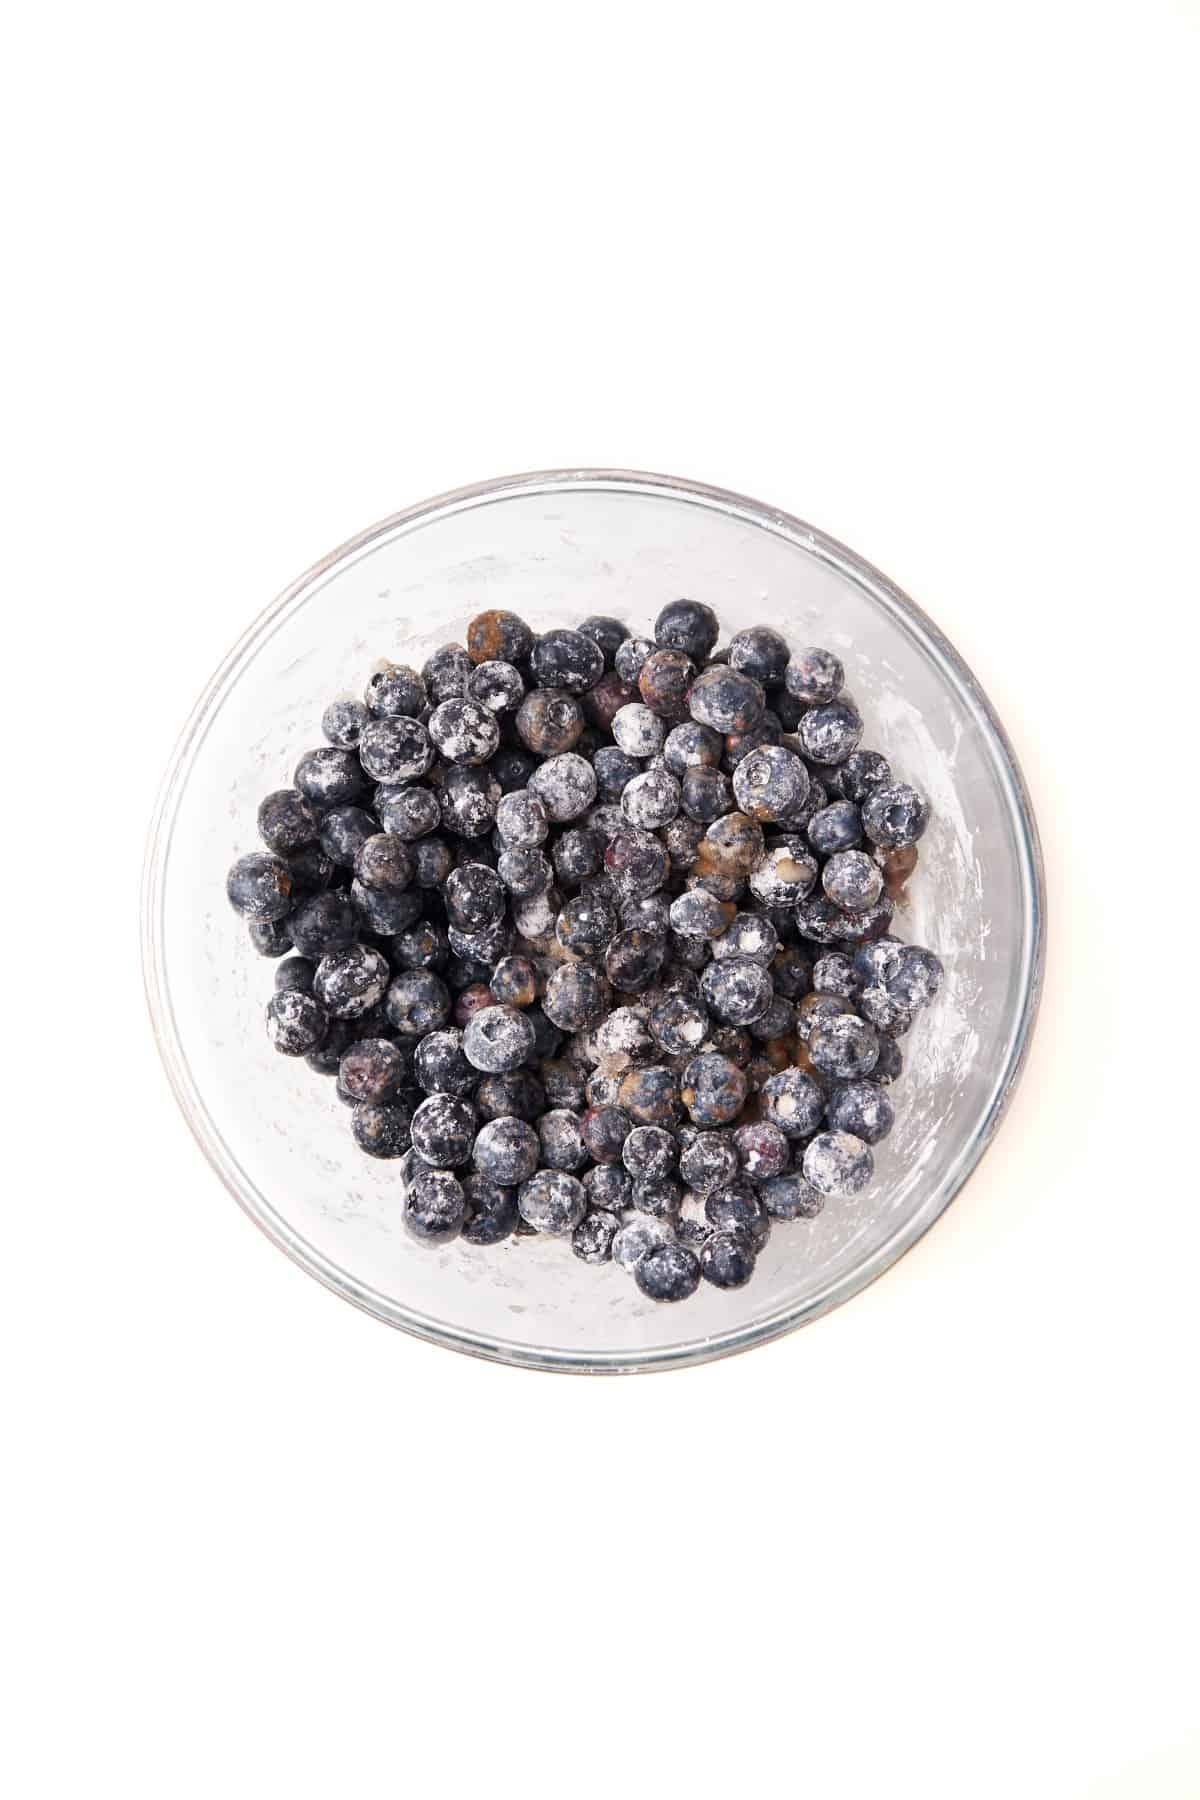 Blueberry Pie filling mixed in a bowl